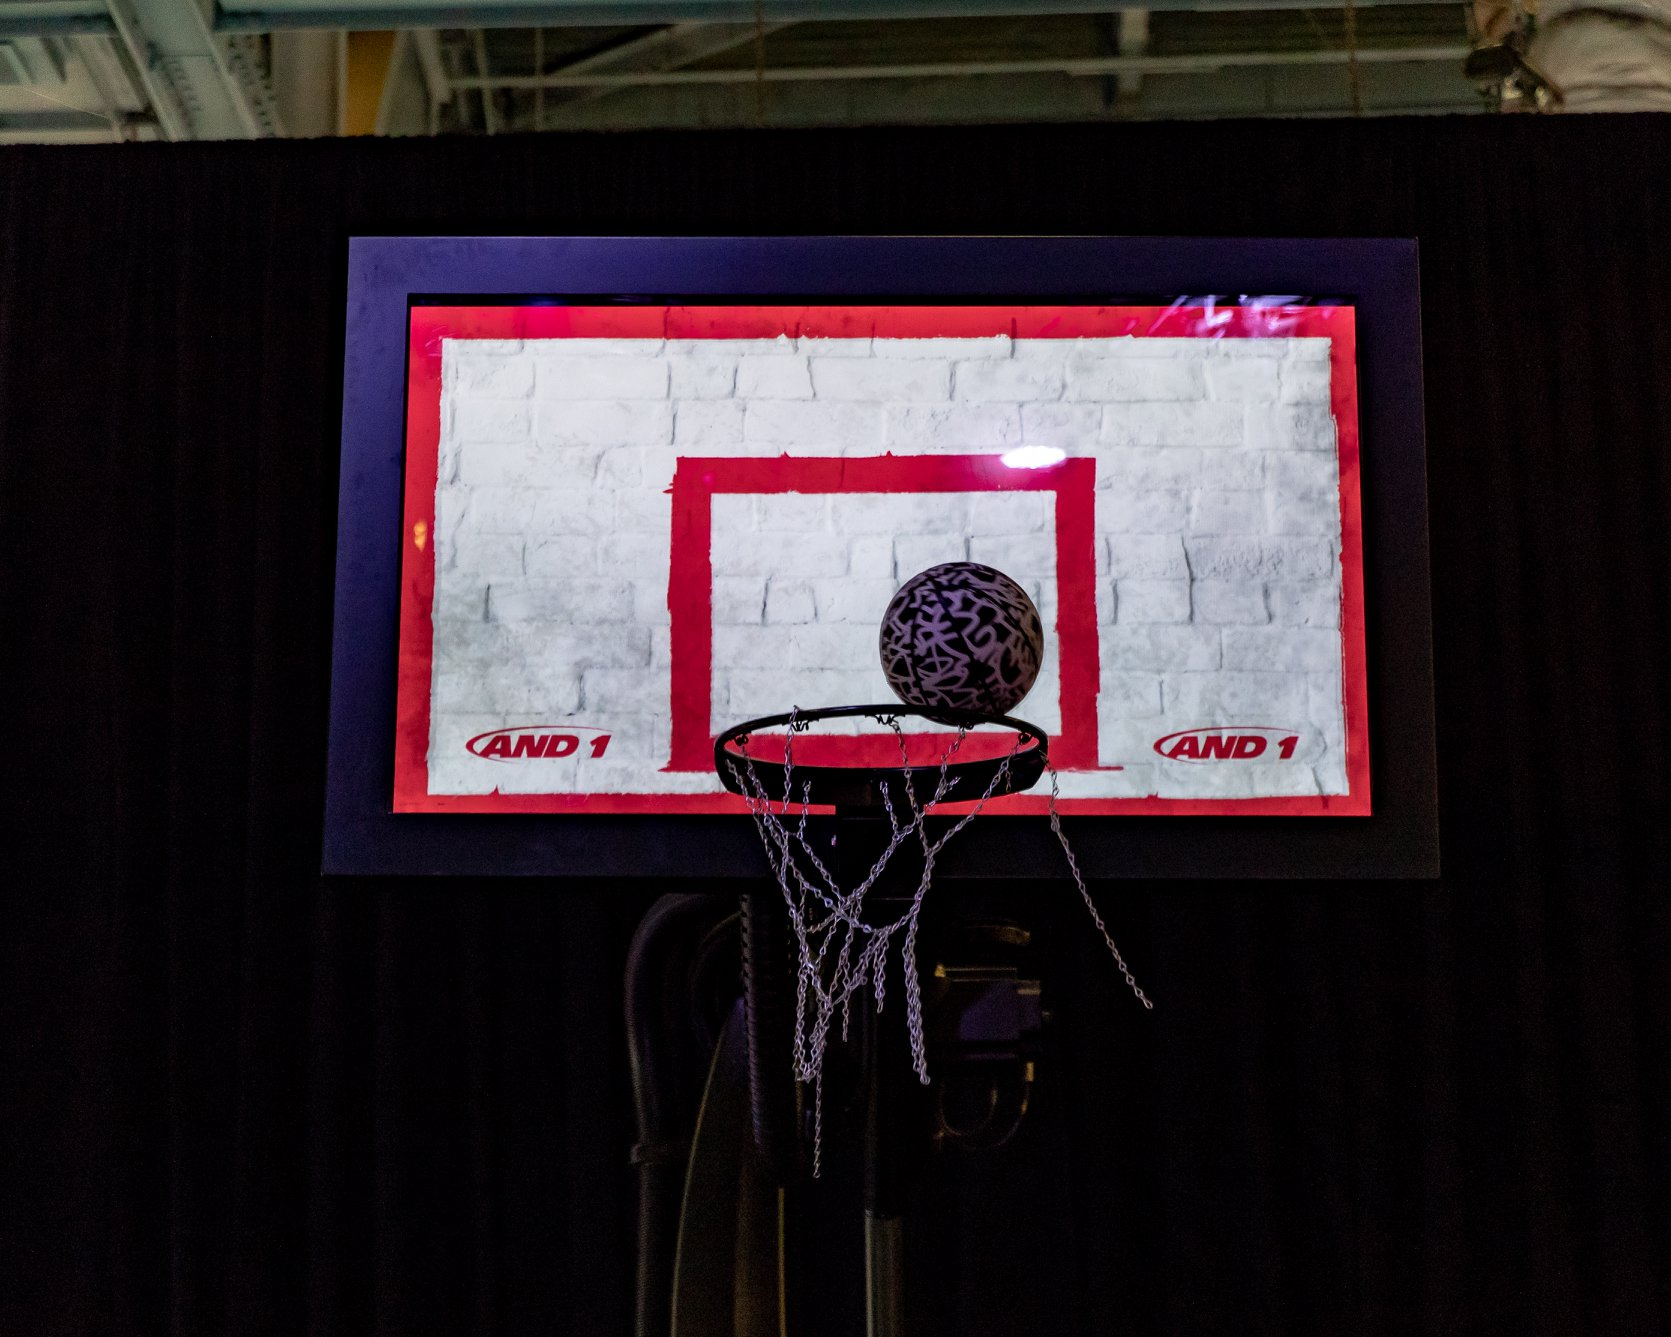 ComplexCon 2018: the return of AND1